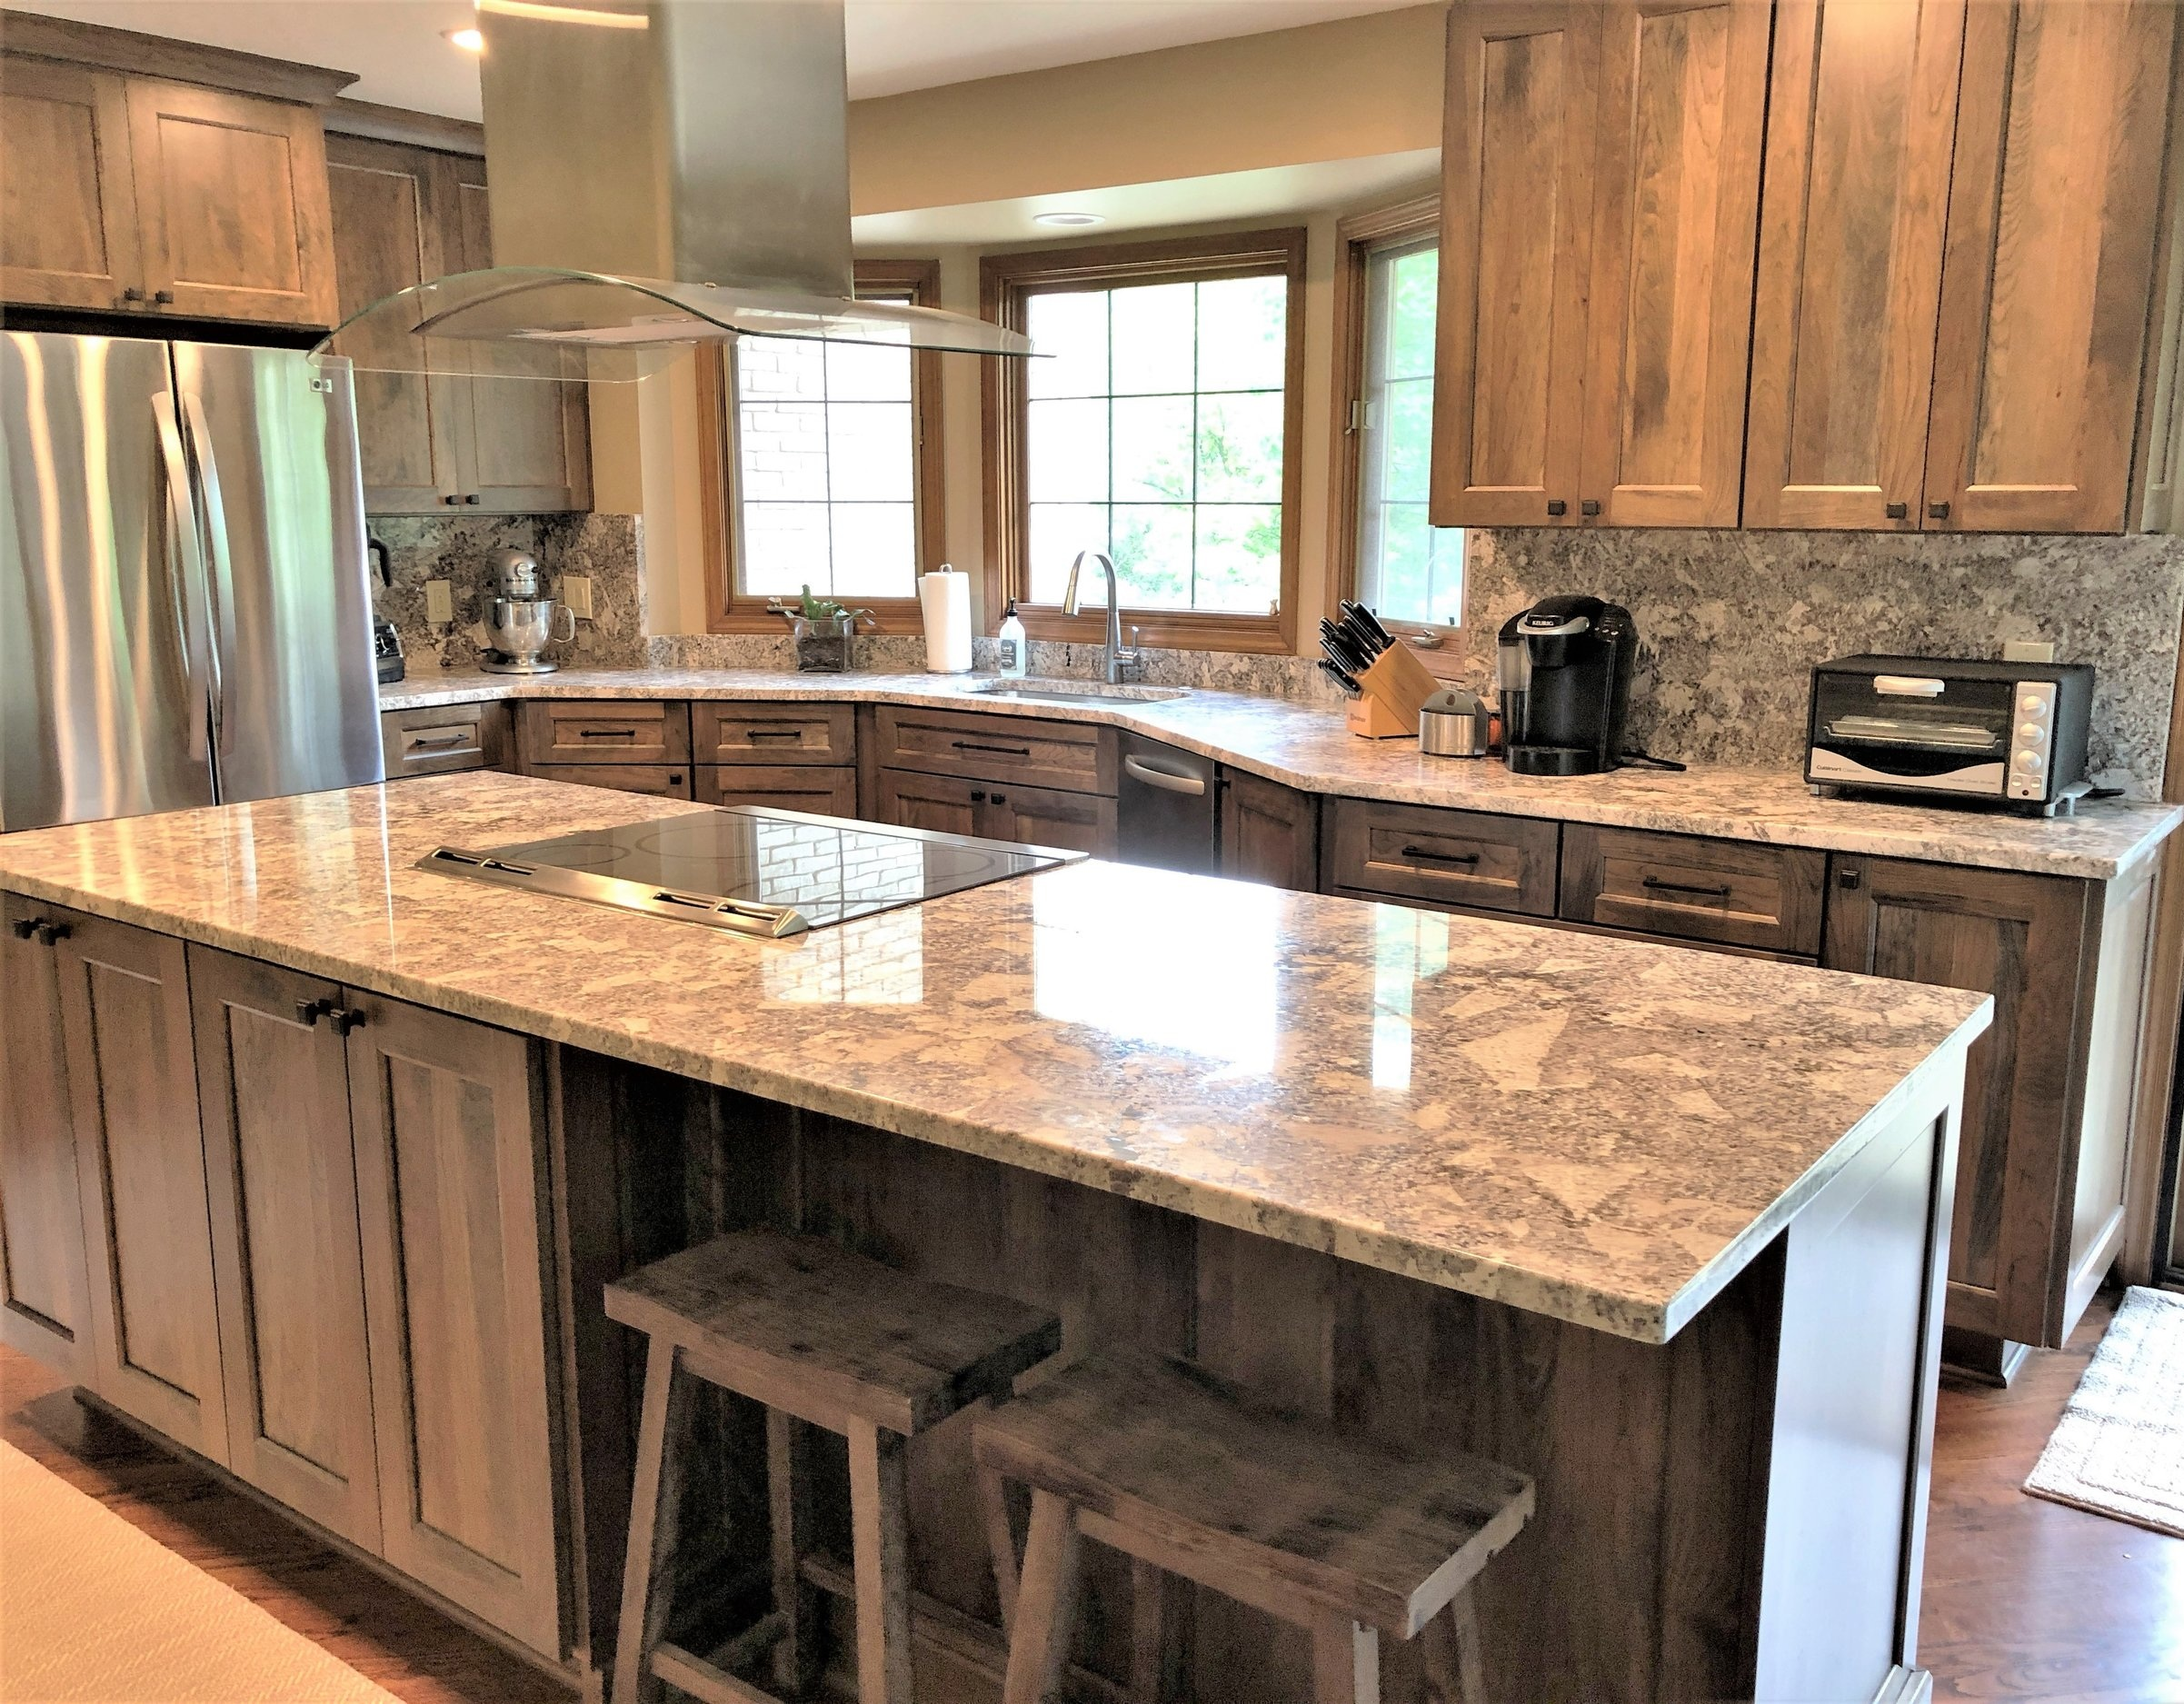 Design & Remodel - With in-house labor & project managers, our installation process offers you high-end finishes for your interior home renovation. Our skilled labor assures your dream home renovation is achievable.